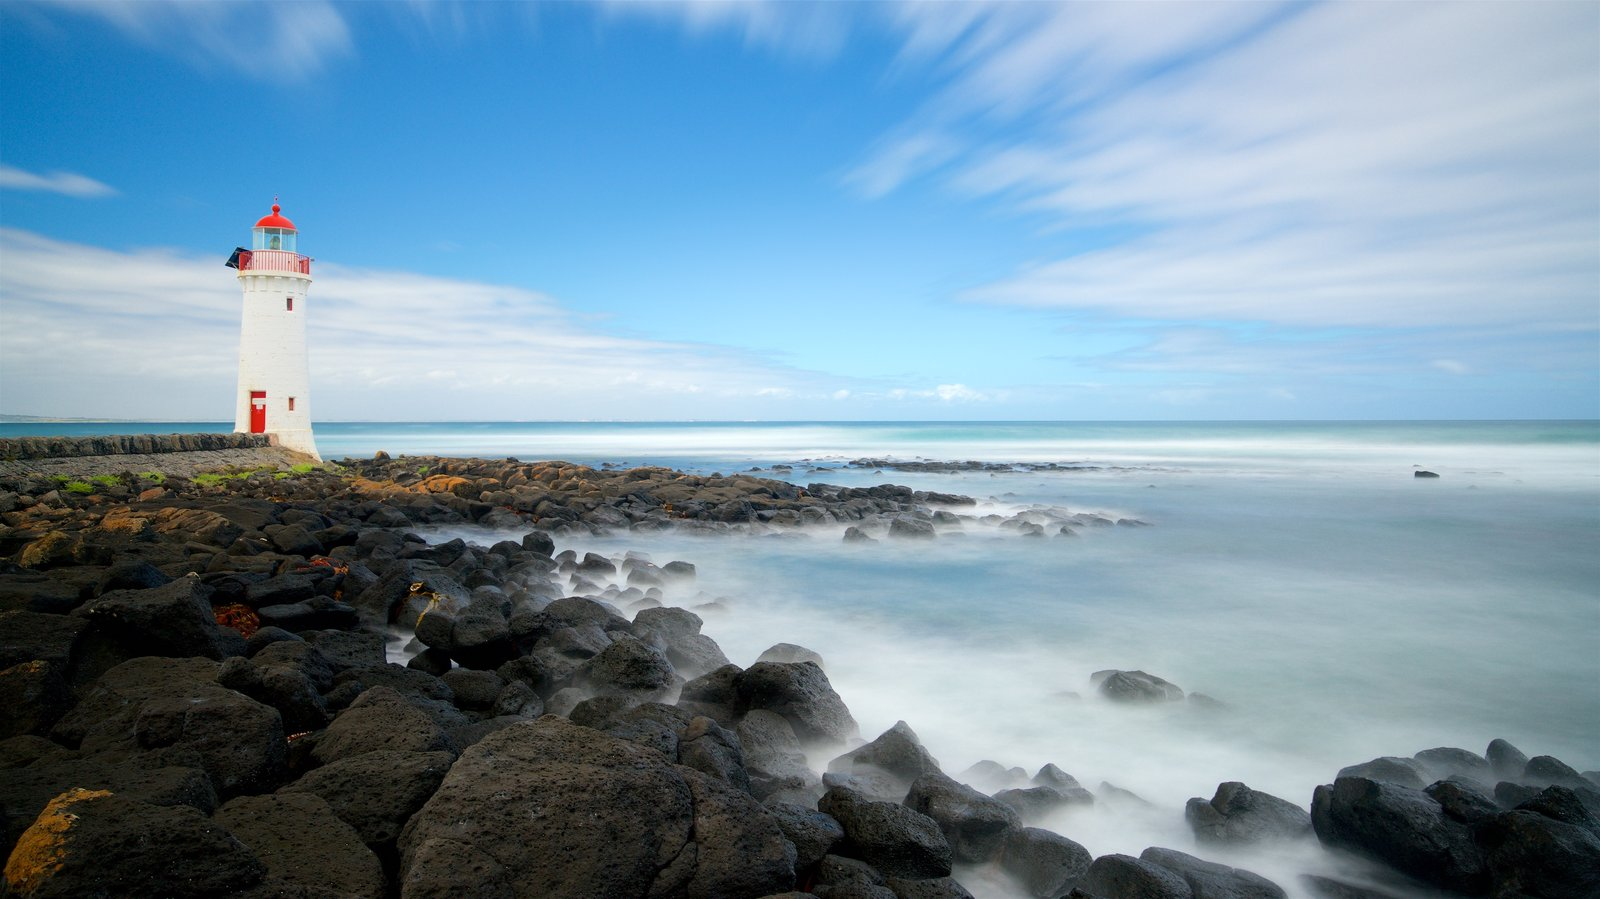 Victoria showing rocky coastline, a lighthouse and general coastal views